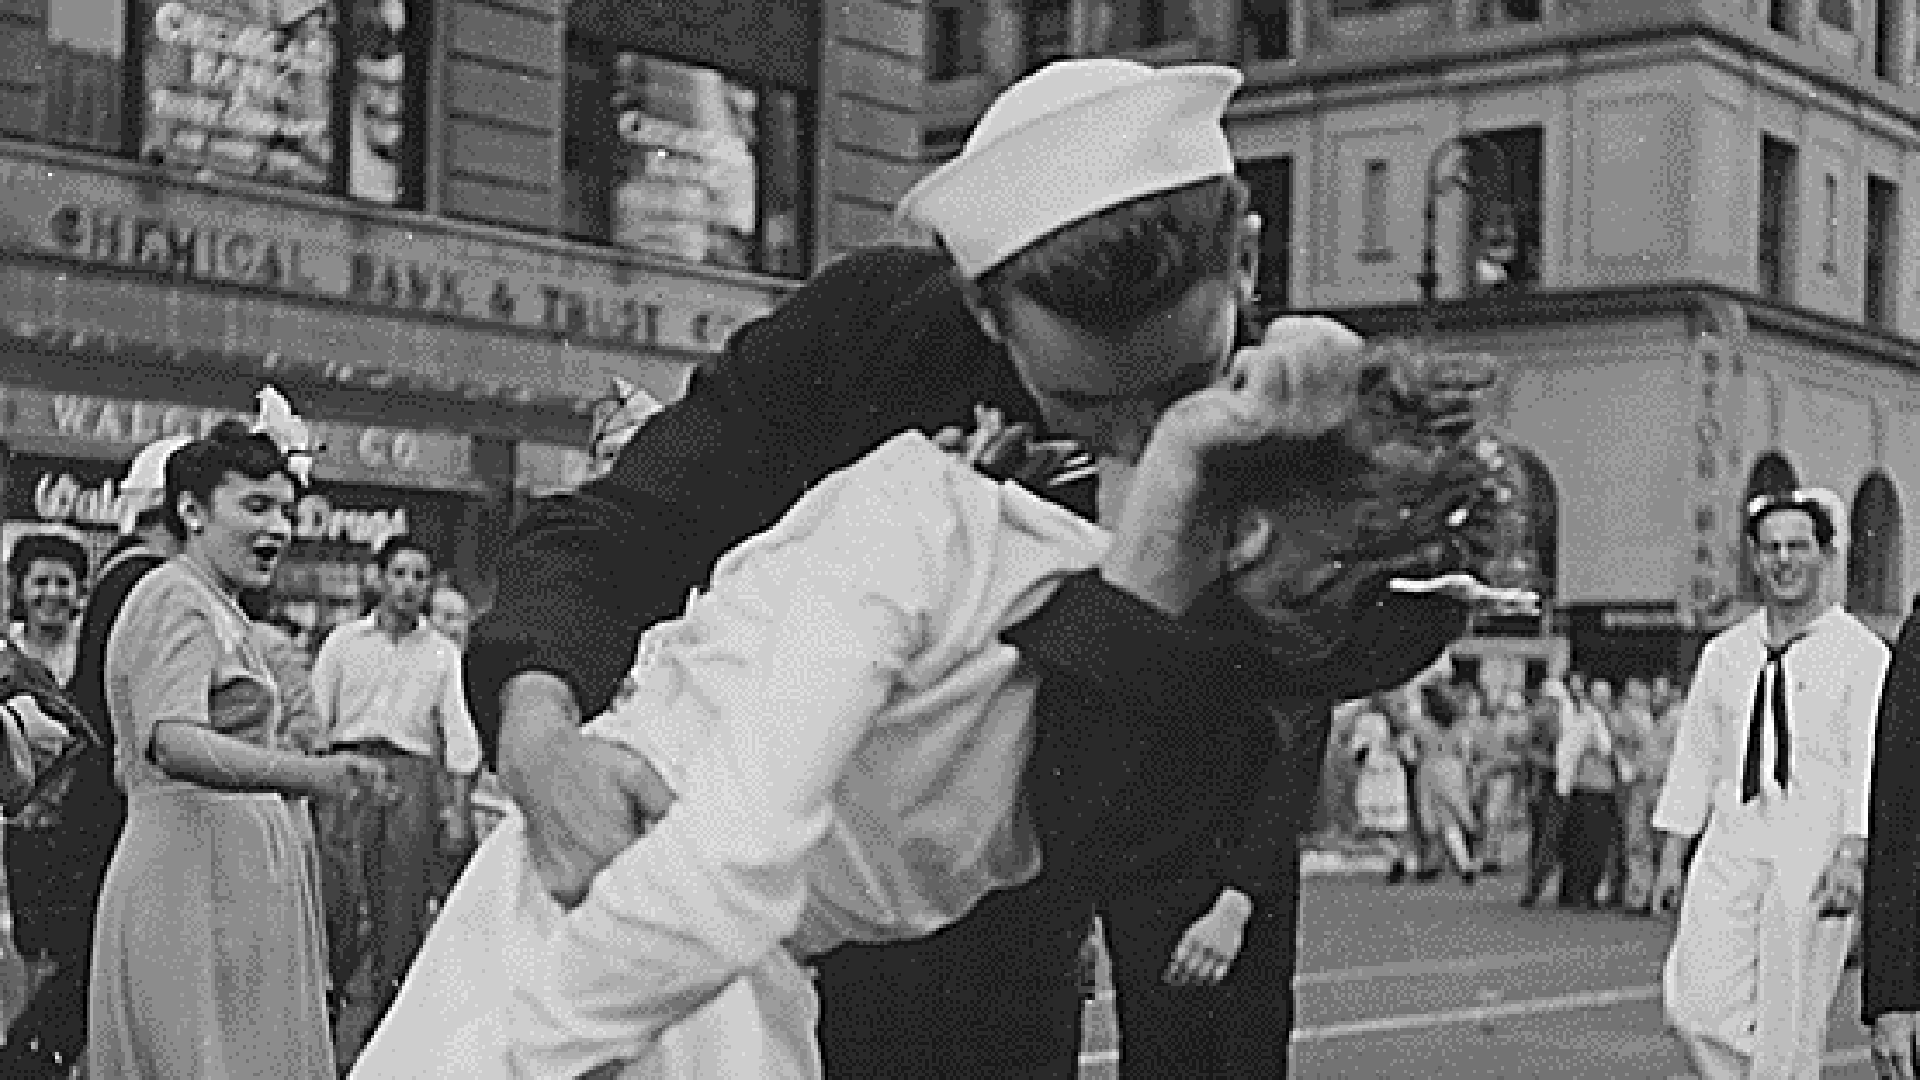 A U.S. Navy sailor is seen kissing a woman in Times Square, New York after the announcement of Japan's surrender on August 14, 1945. (Credit: Victor Jorgenson via the National Archives)